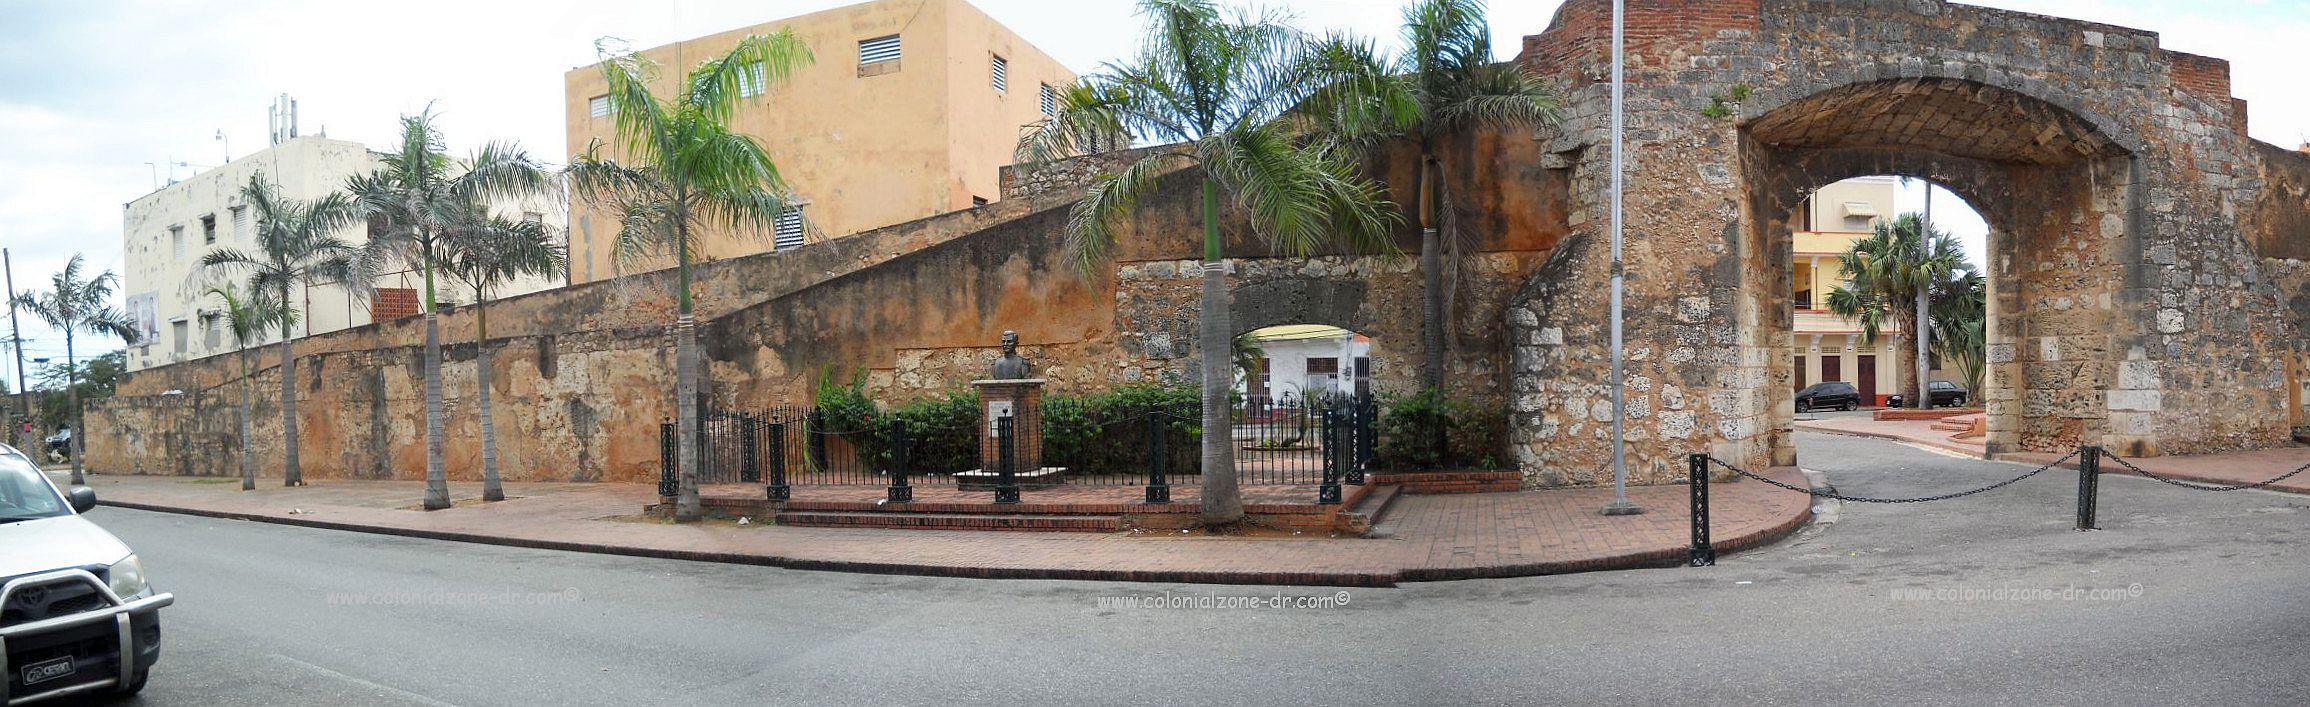 puerta misericordia in zona colonial